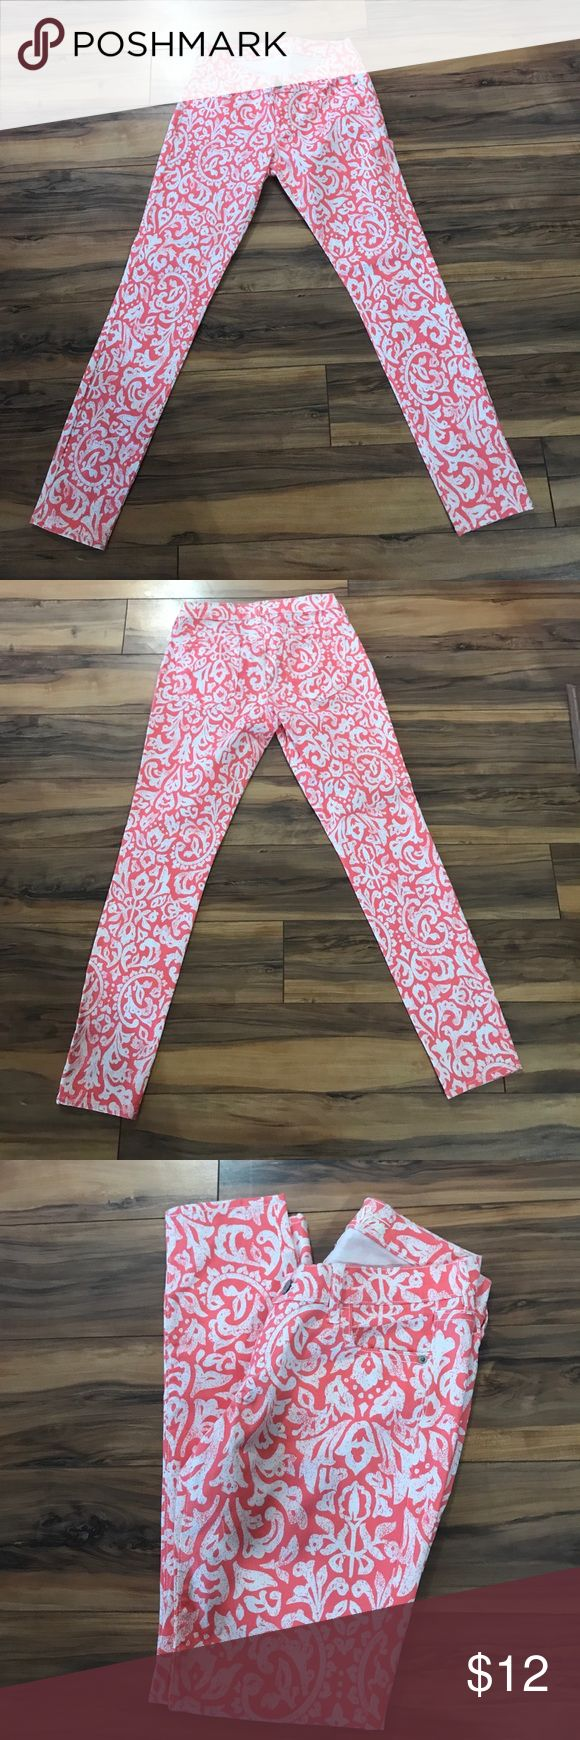 Old Navy Peach & White RockStar Skinny Jeans Old Navy peach & white detailed RockStar skinny jeans, 29.5 inch inseam, 37 inch outer seam, pockets on front & back Old Navy Jeans Skinny